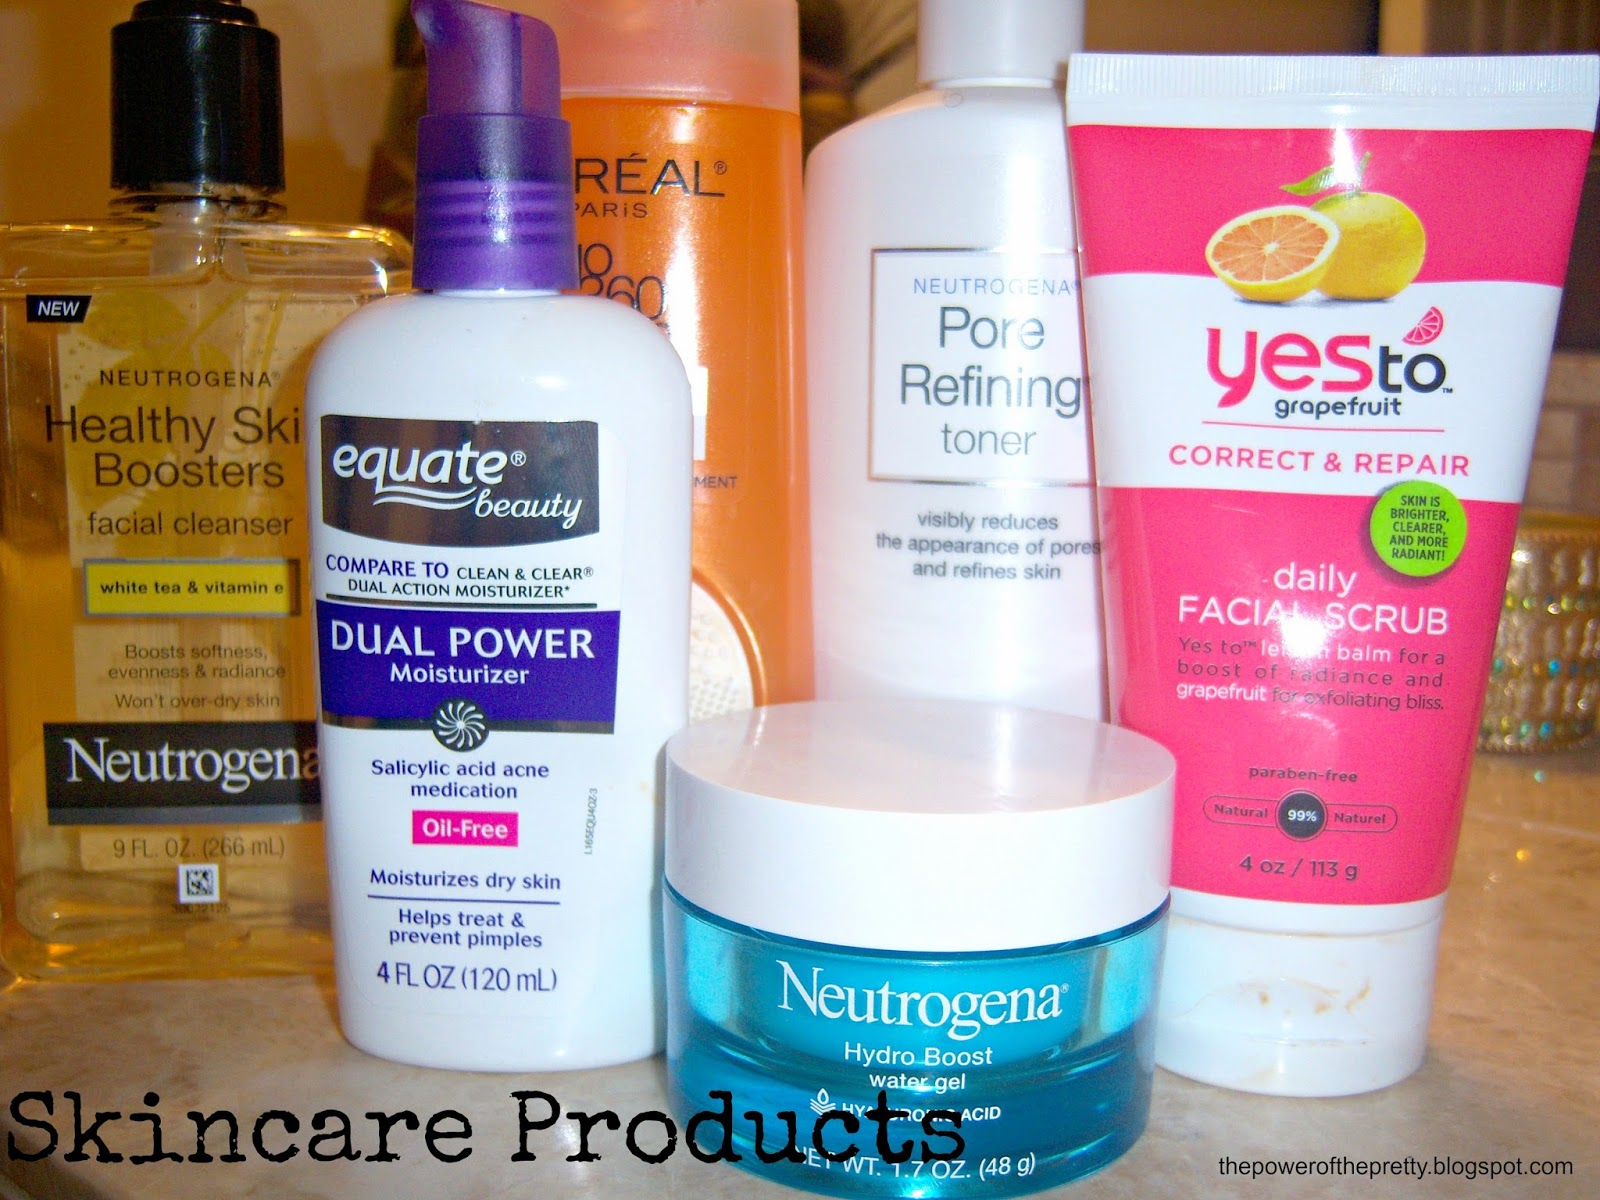 My Skincare Routine To Treat Acne and Uneven Skintone